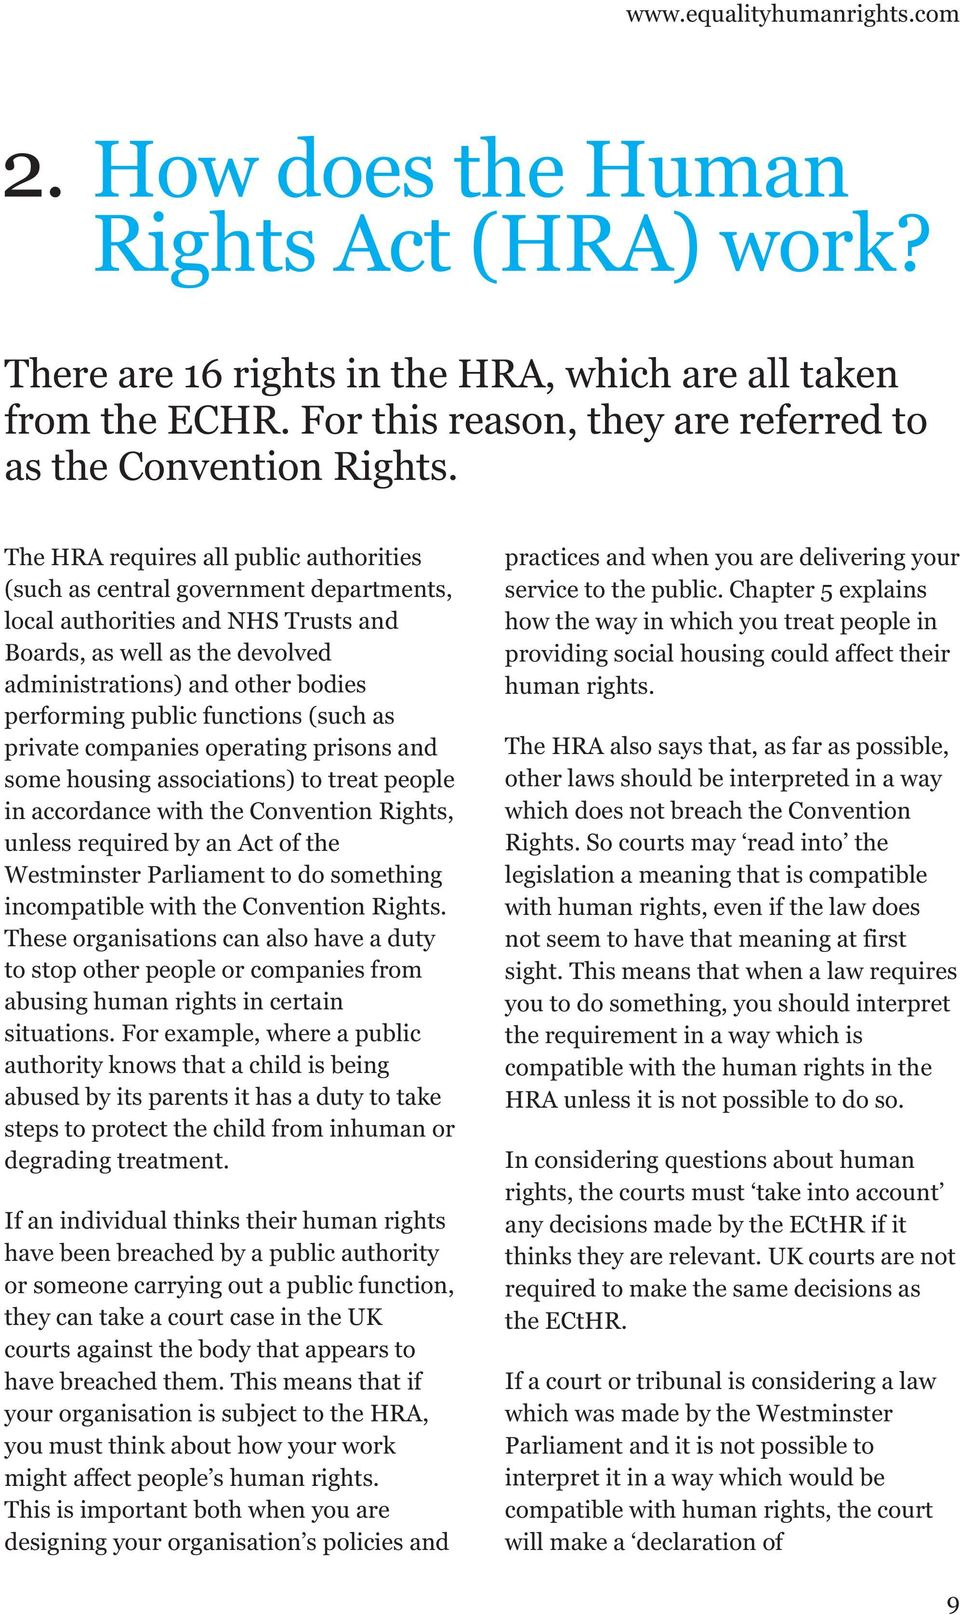 The HRA requires all public authorities (such as central government departments, local authorities and NHS Trusts and Boards, as well as the devolved administrations) and other bodies performing